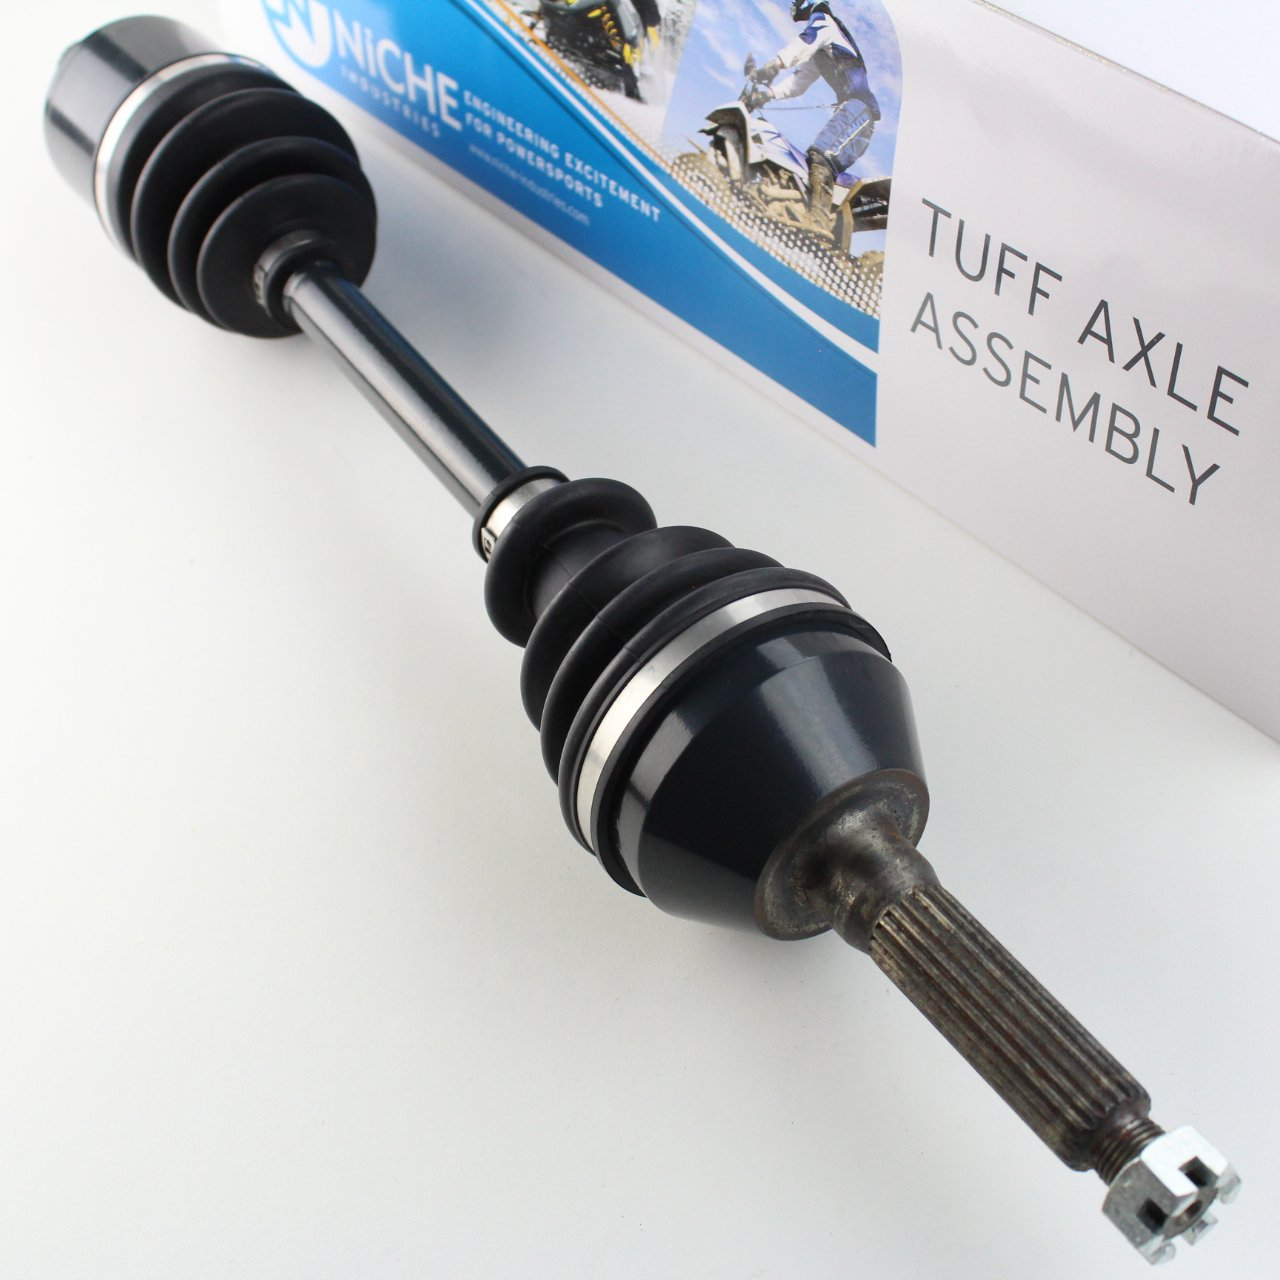 NICHE Front Left or Right CV Axle Drive Shaft Assembly for Polaris Sportsman 500 2007-2012